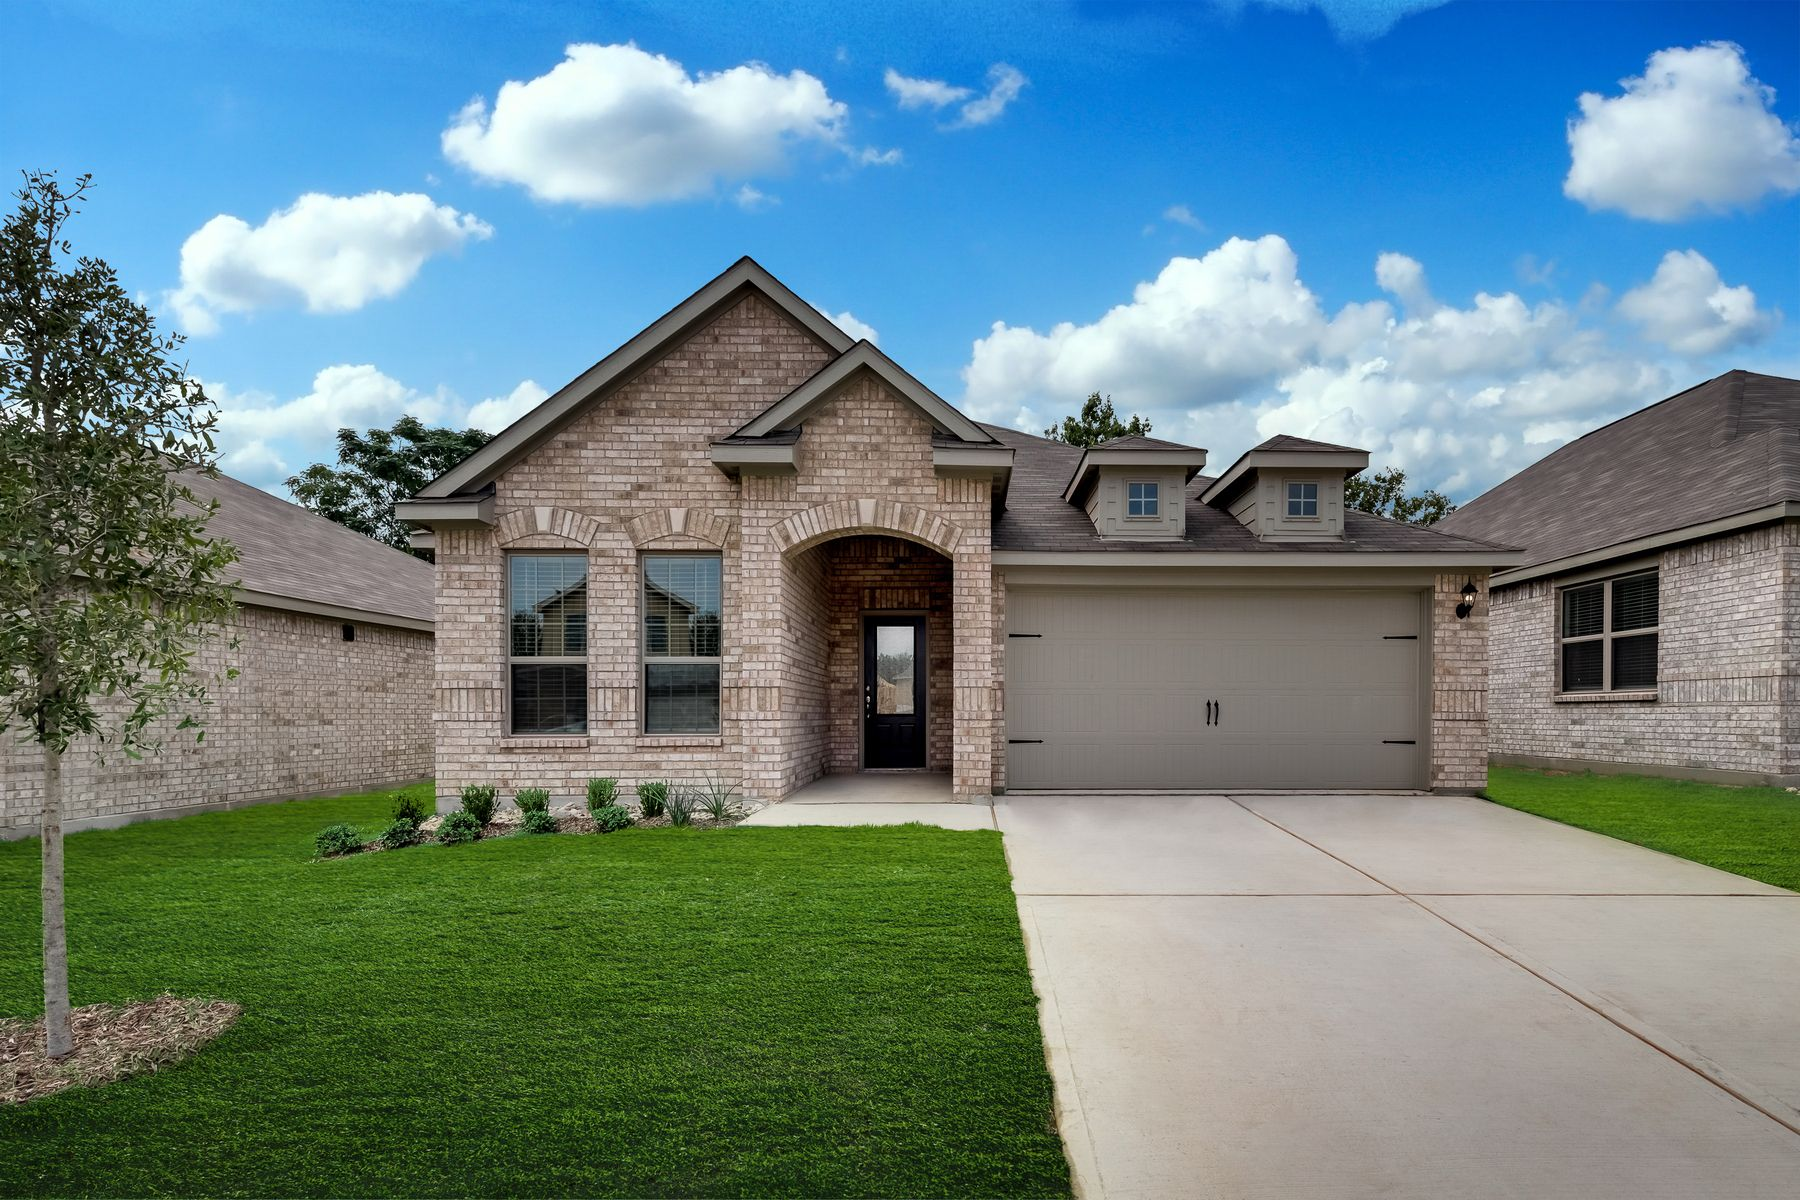 The Erie by LGI Homes:The stunning Erie plan is ready for move-in!